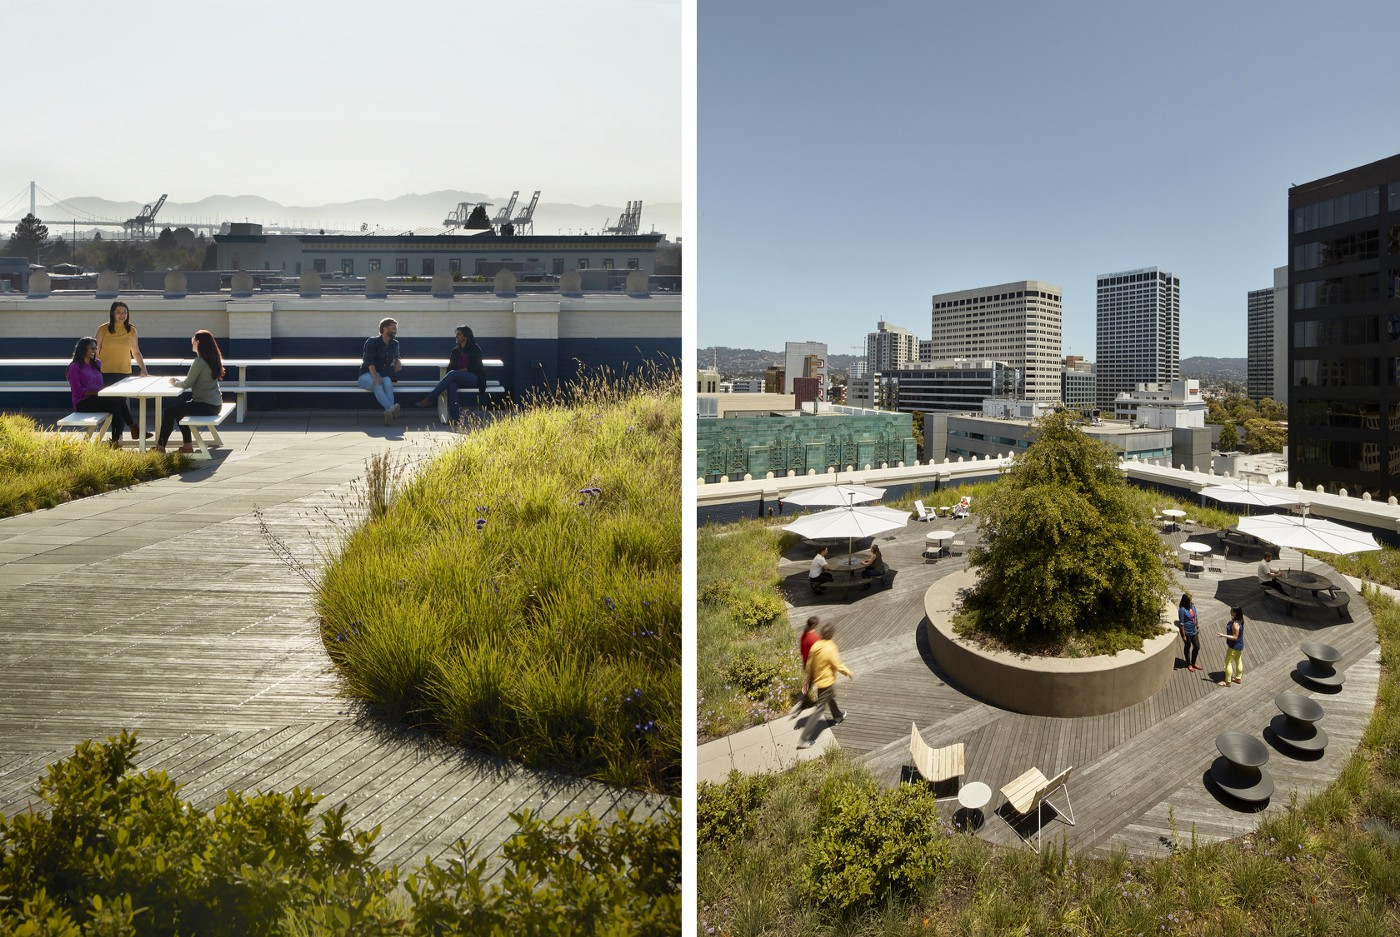 Outdoor terraces features views of the city, hills, and bay.